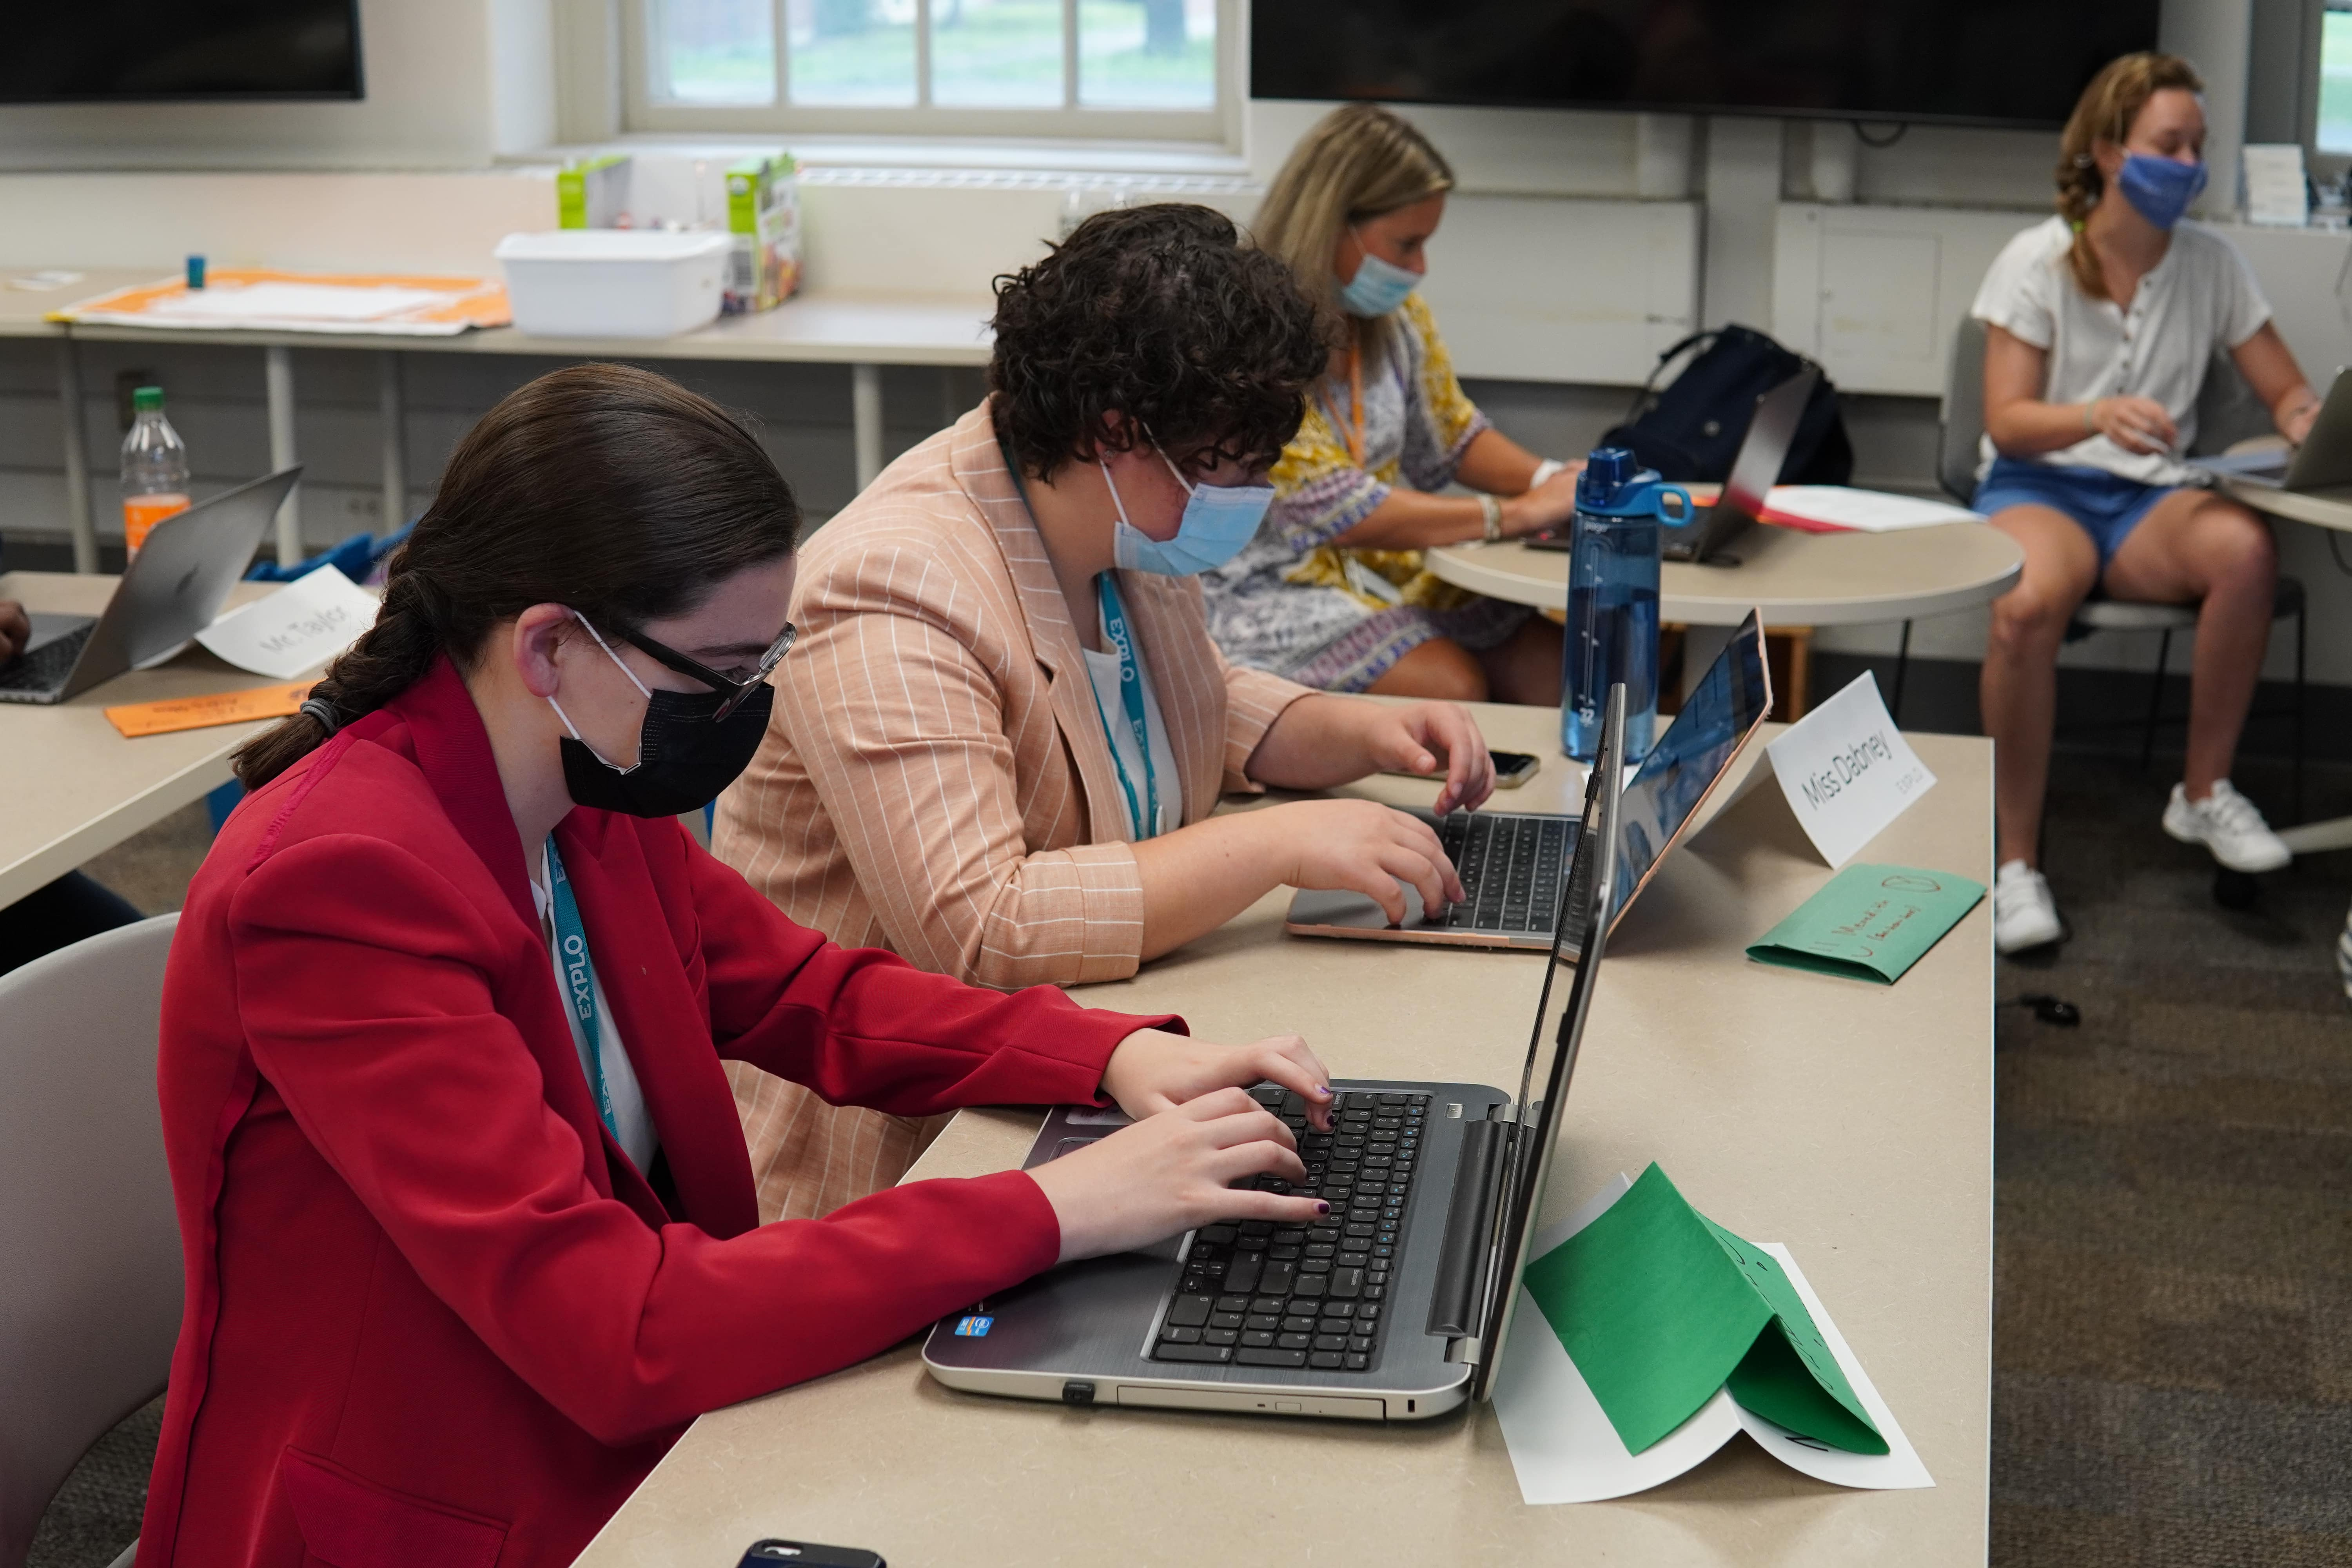 Students work at their laptops in the classroom as their instructors complete their own preparations behind them.